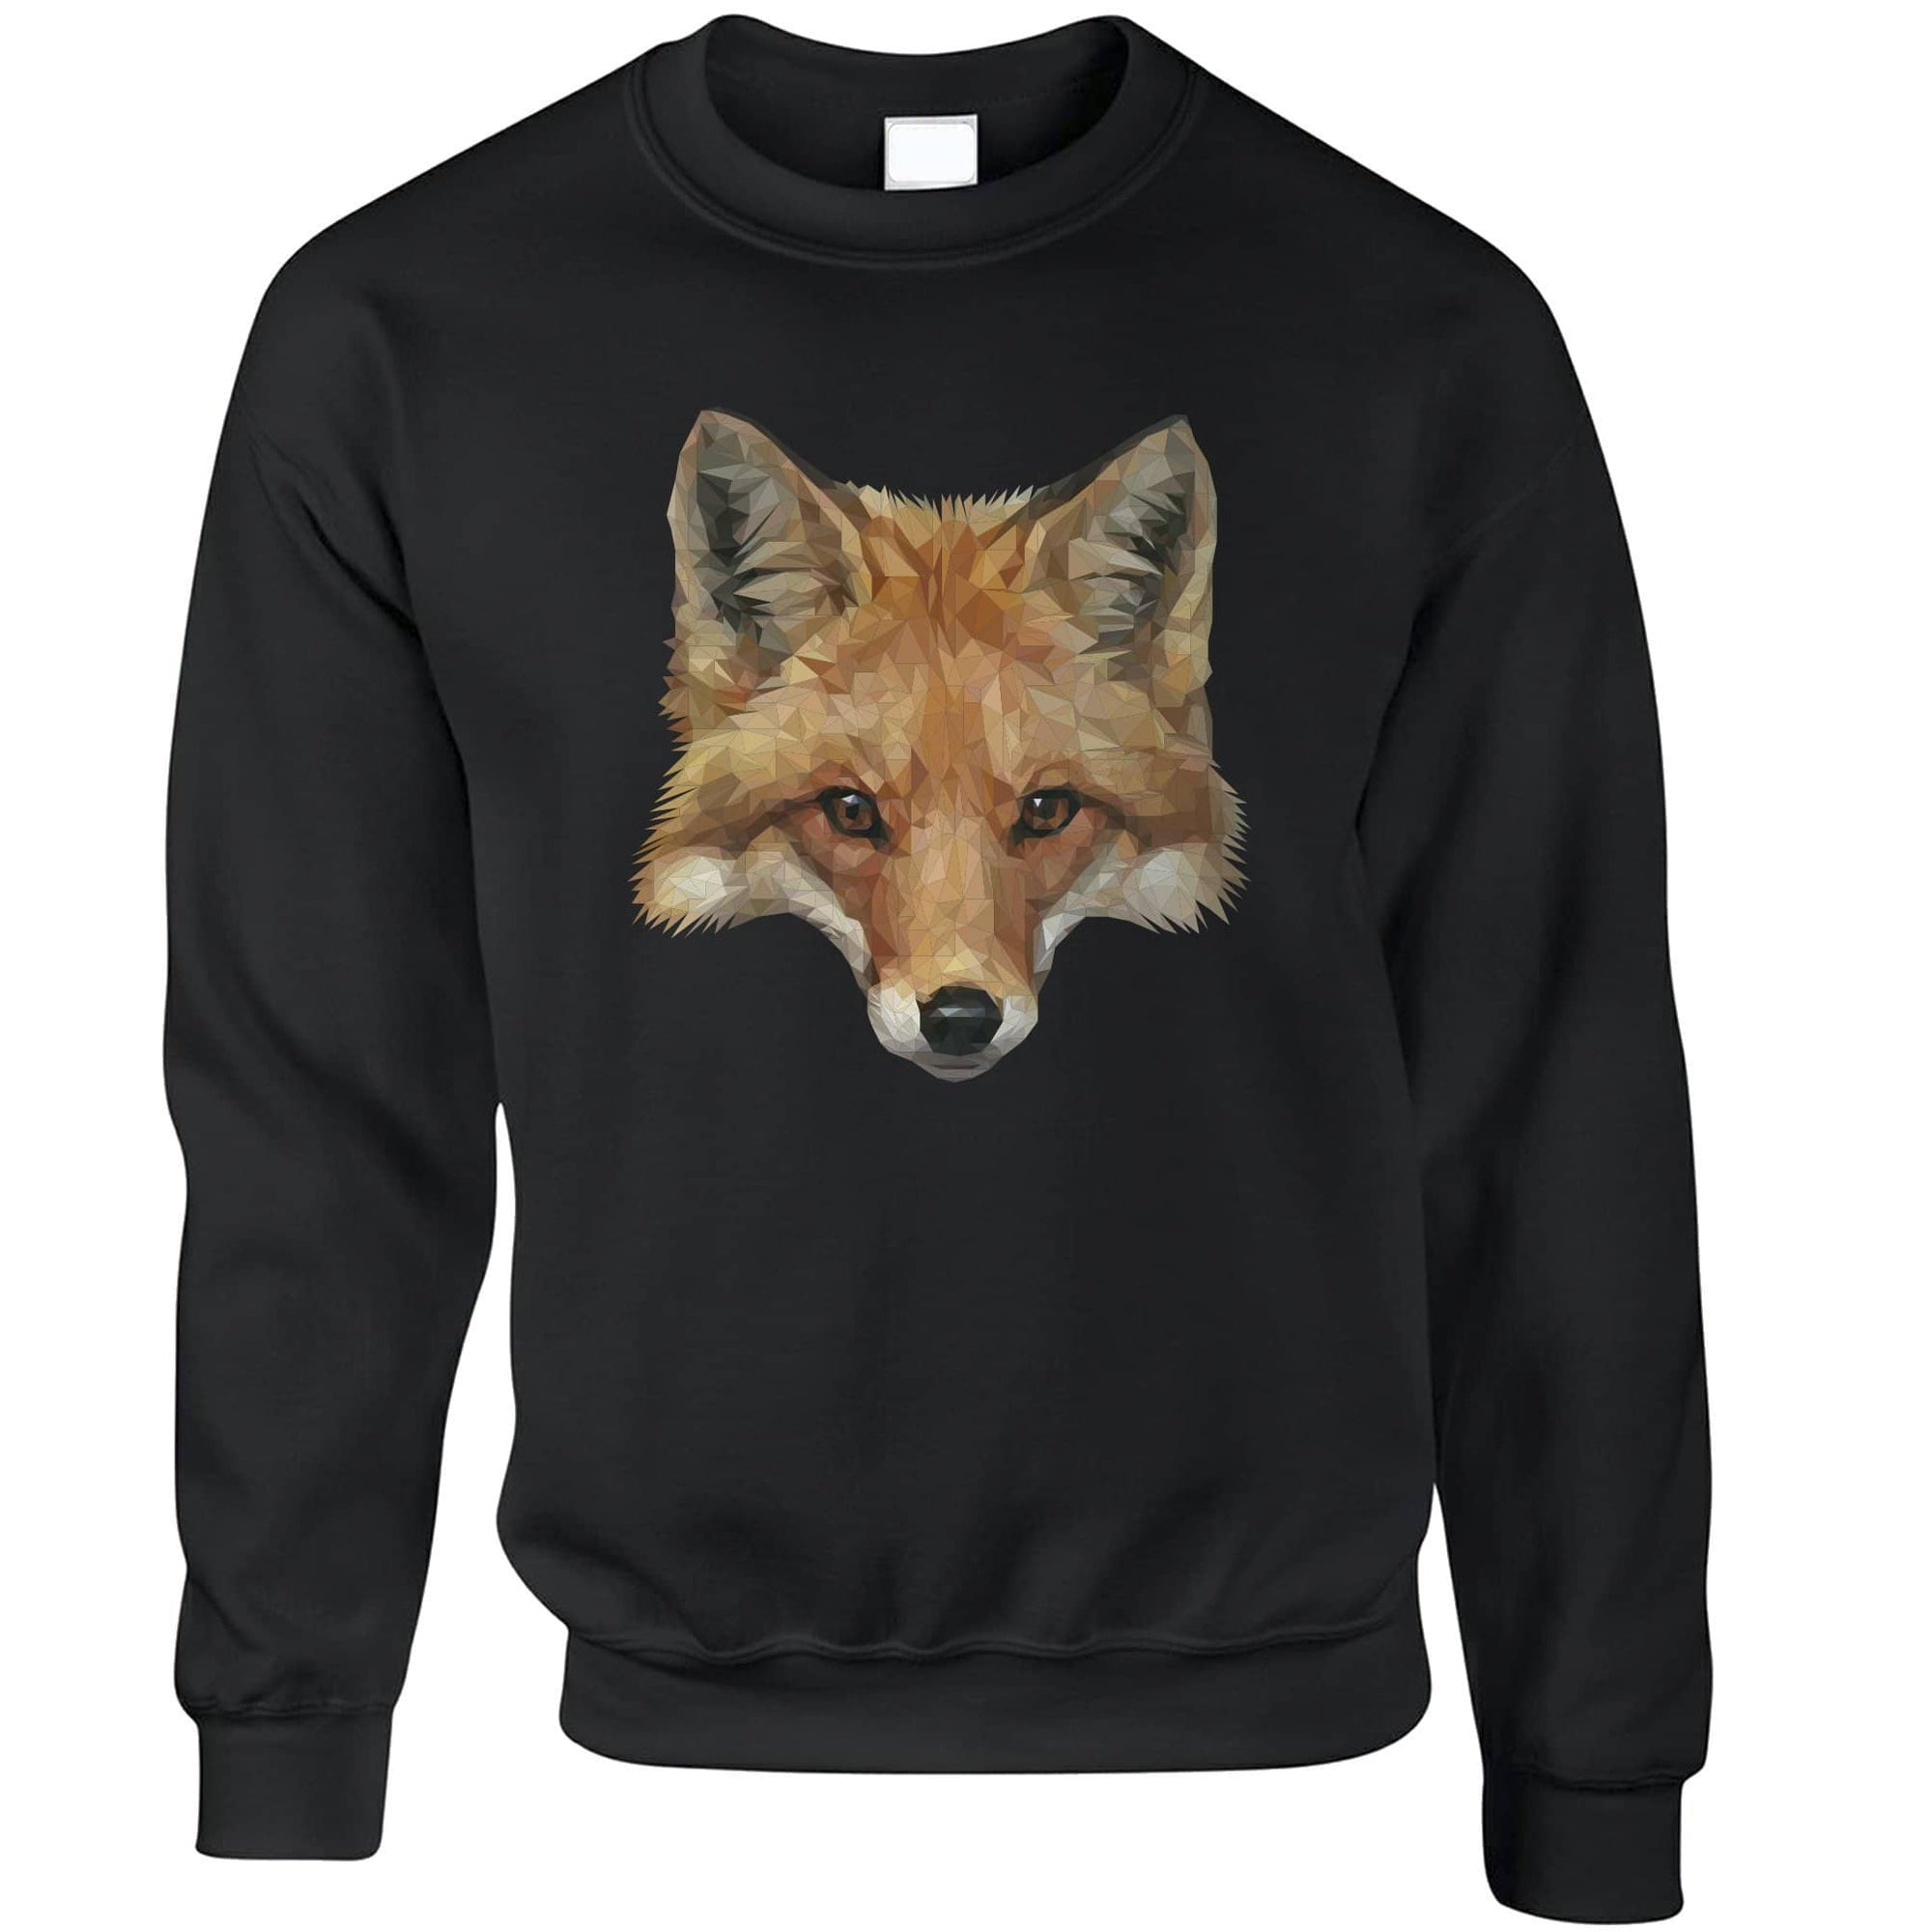 Animal Art Jumper Low Poly Fox Graphic Sweatshirt Sweater